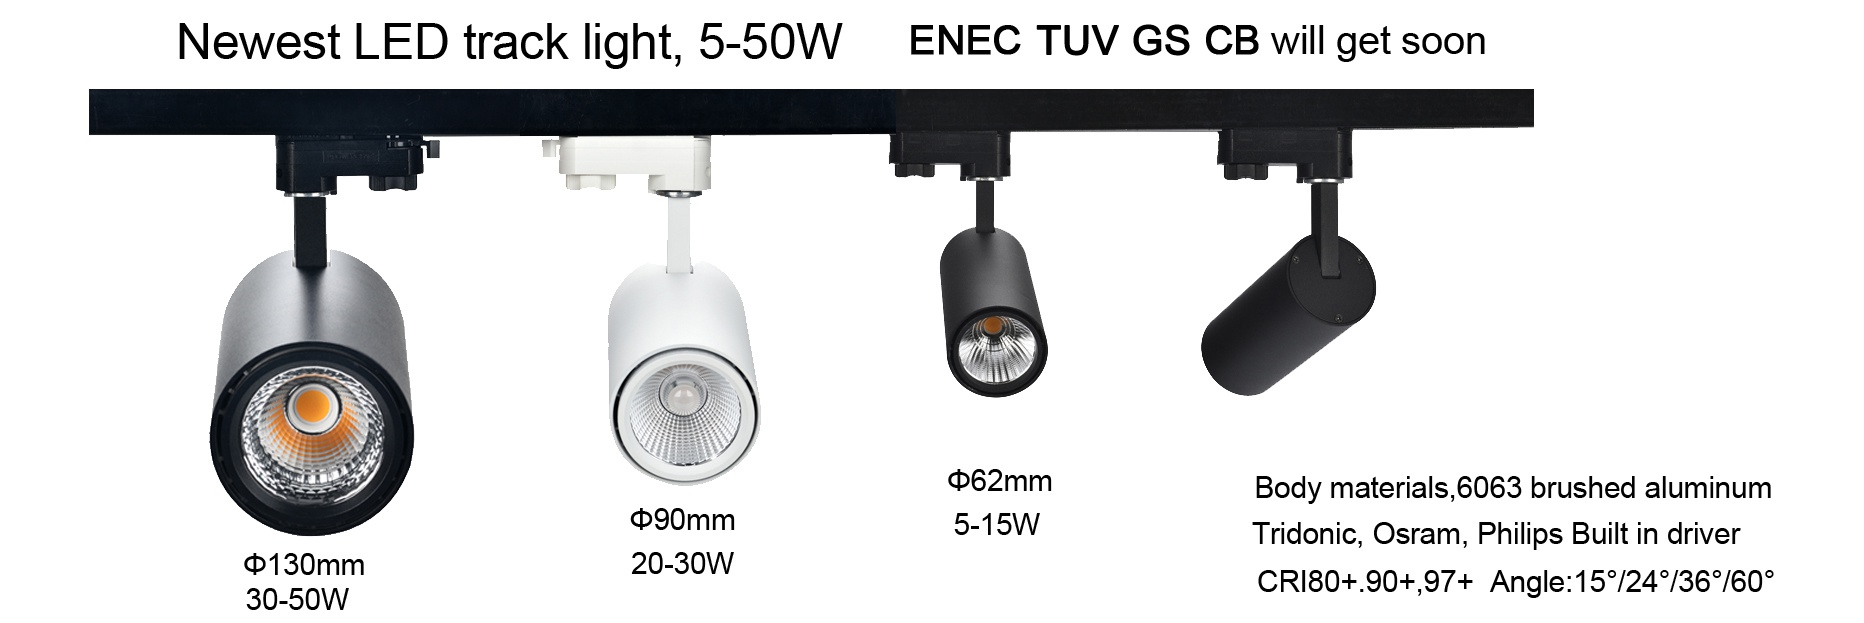 ENEC, TUV GS, CB LED track light, 10-50W,